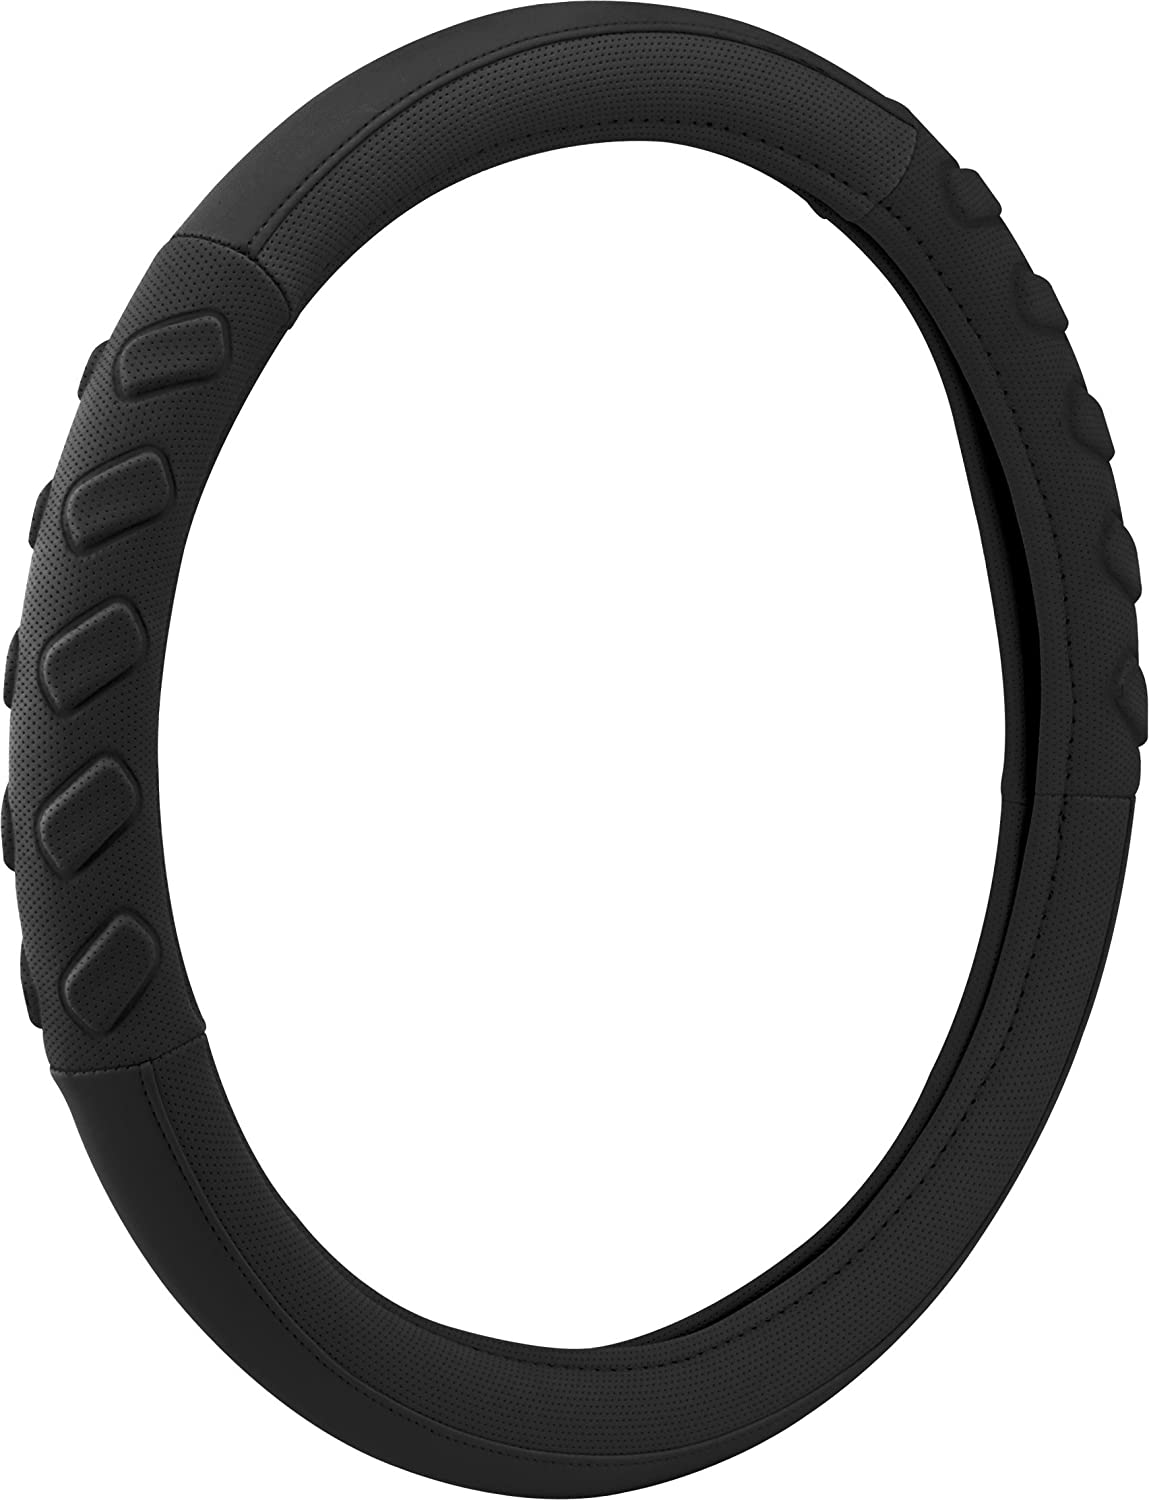 Black Bell Automotive 22-1-76109-8 Universal Pole Position Steering Wheel Cover